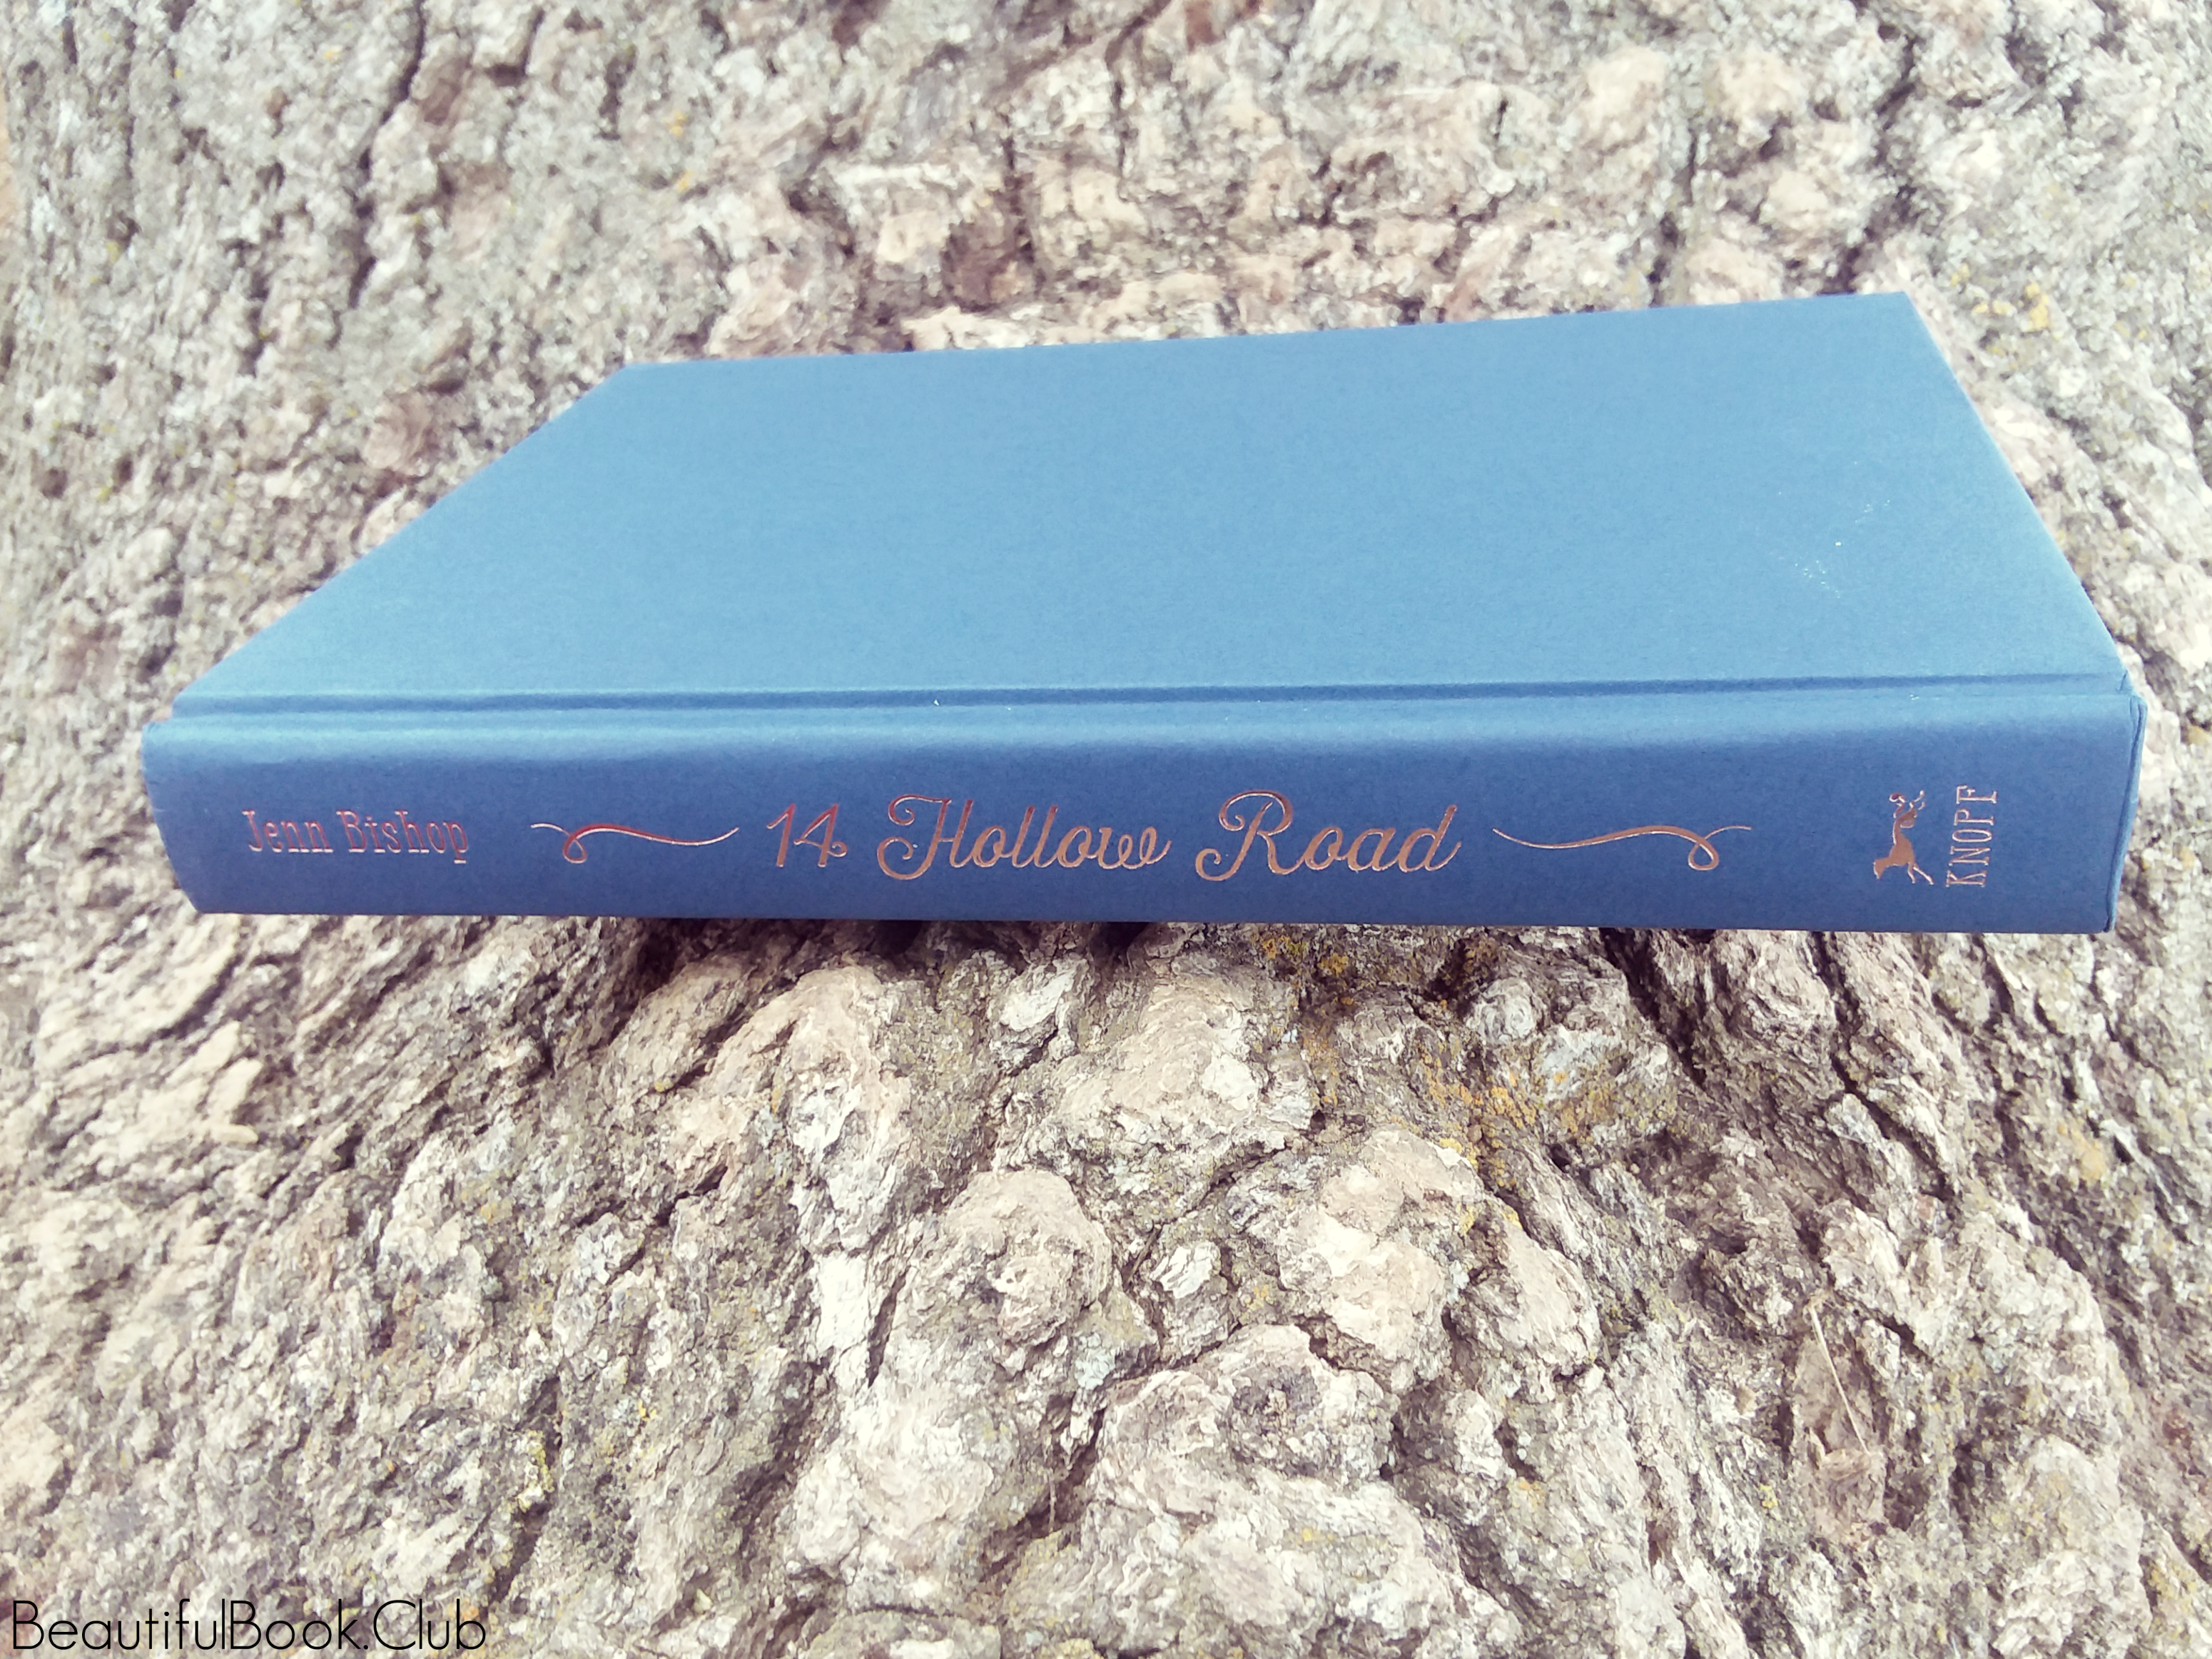 14 Hollow Road by Jenn Bishop spine without book jacket